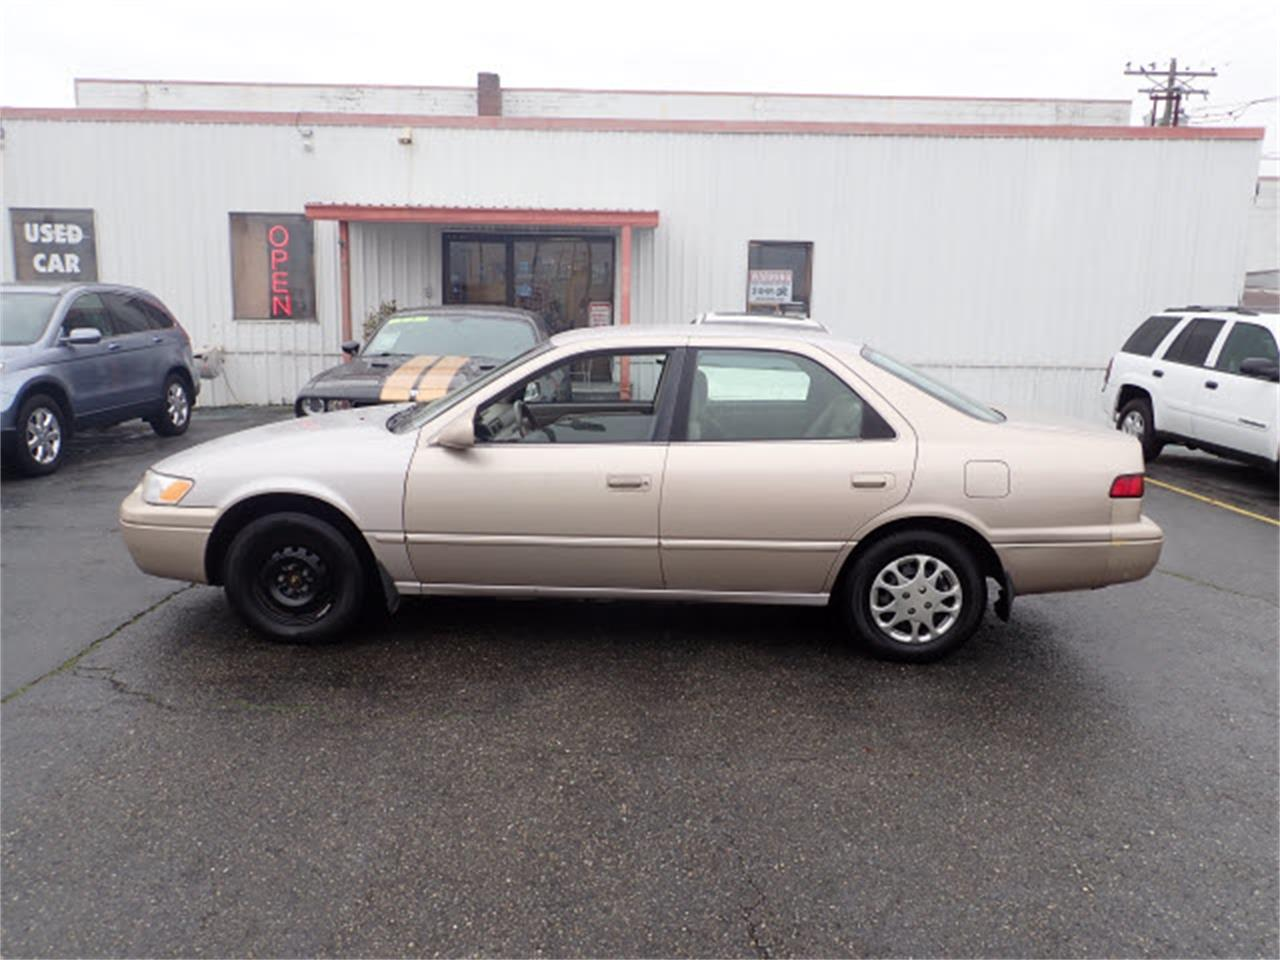 1999 Toyota Camry for sale in Tacoma, WA – photo 2